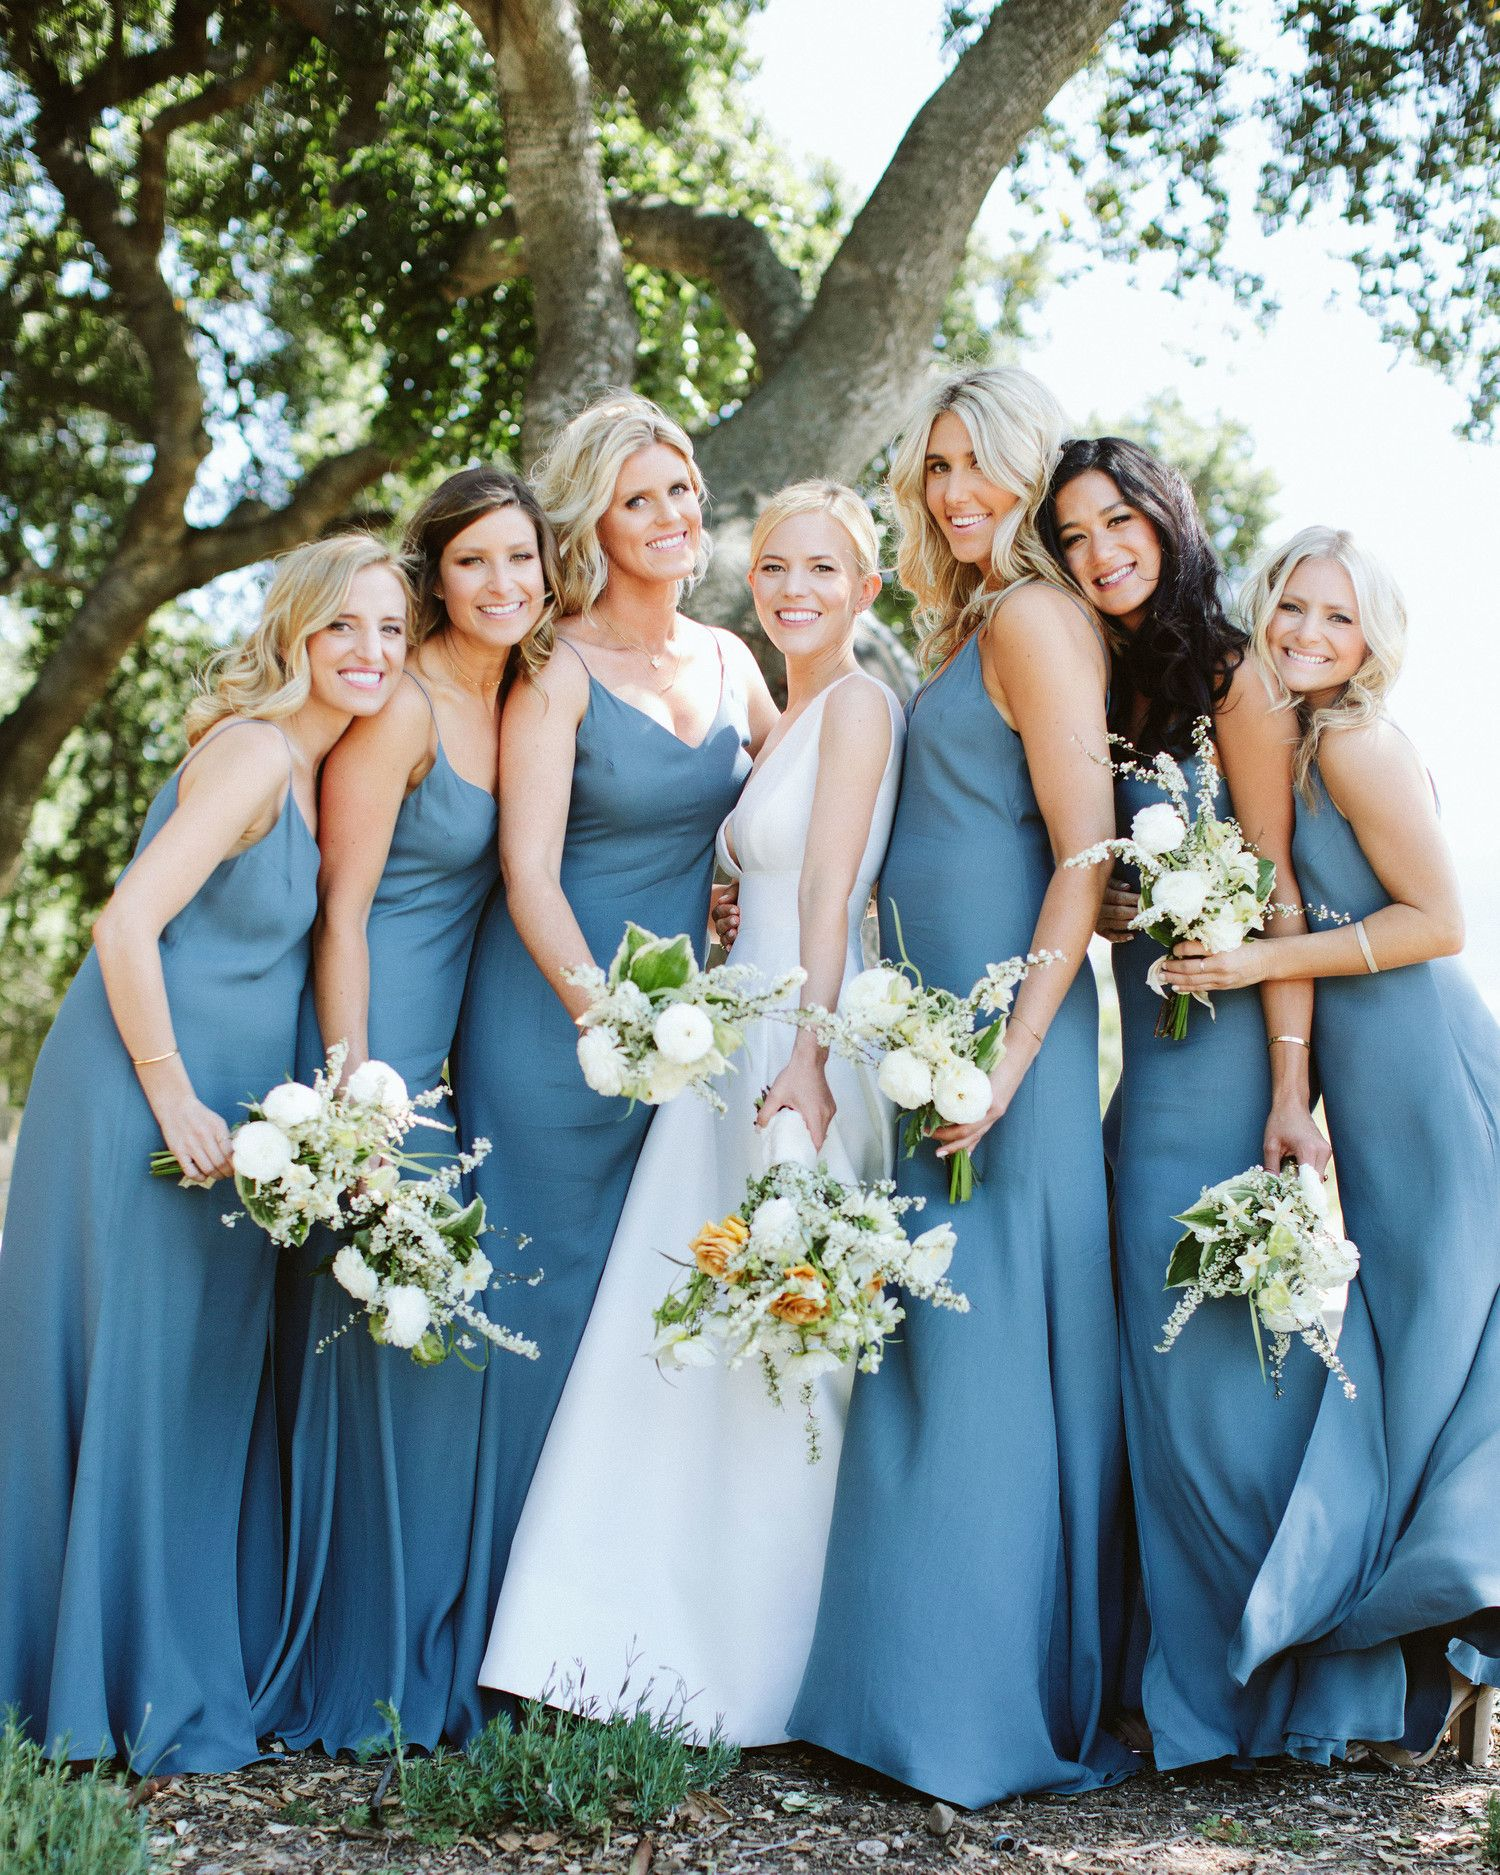 An Outdoor Spring Wedding in Ojai, California | Closest friends ...